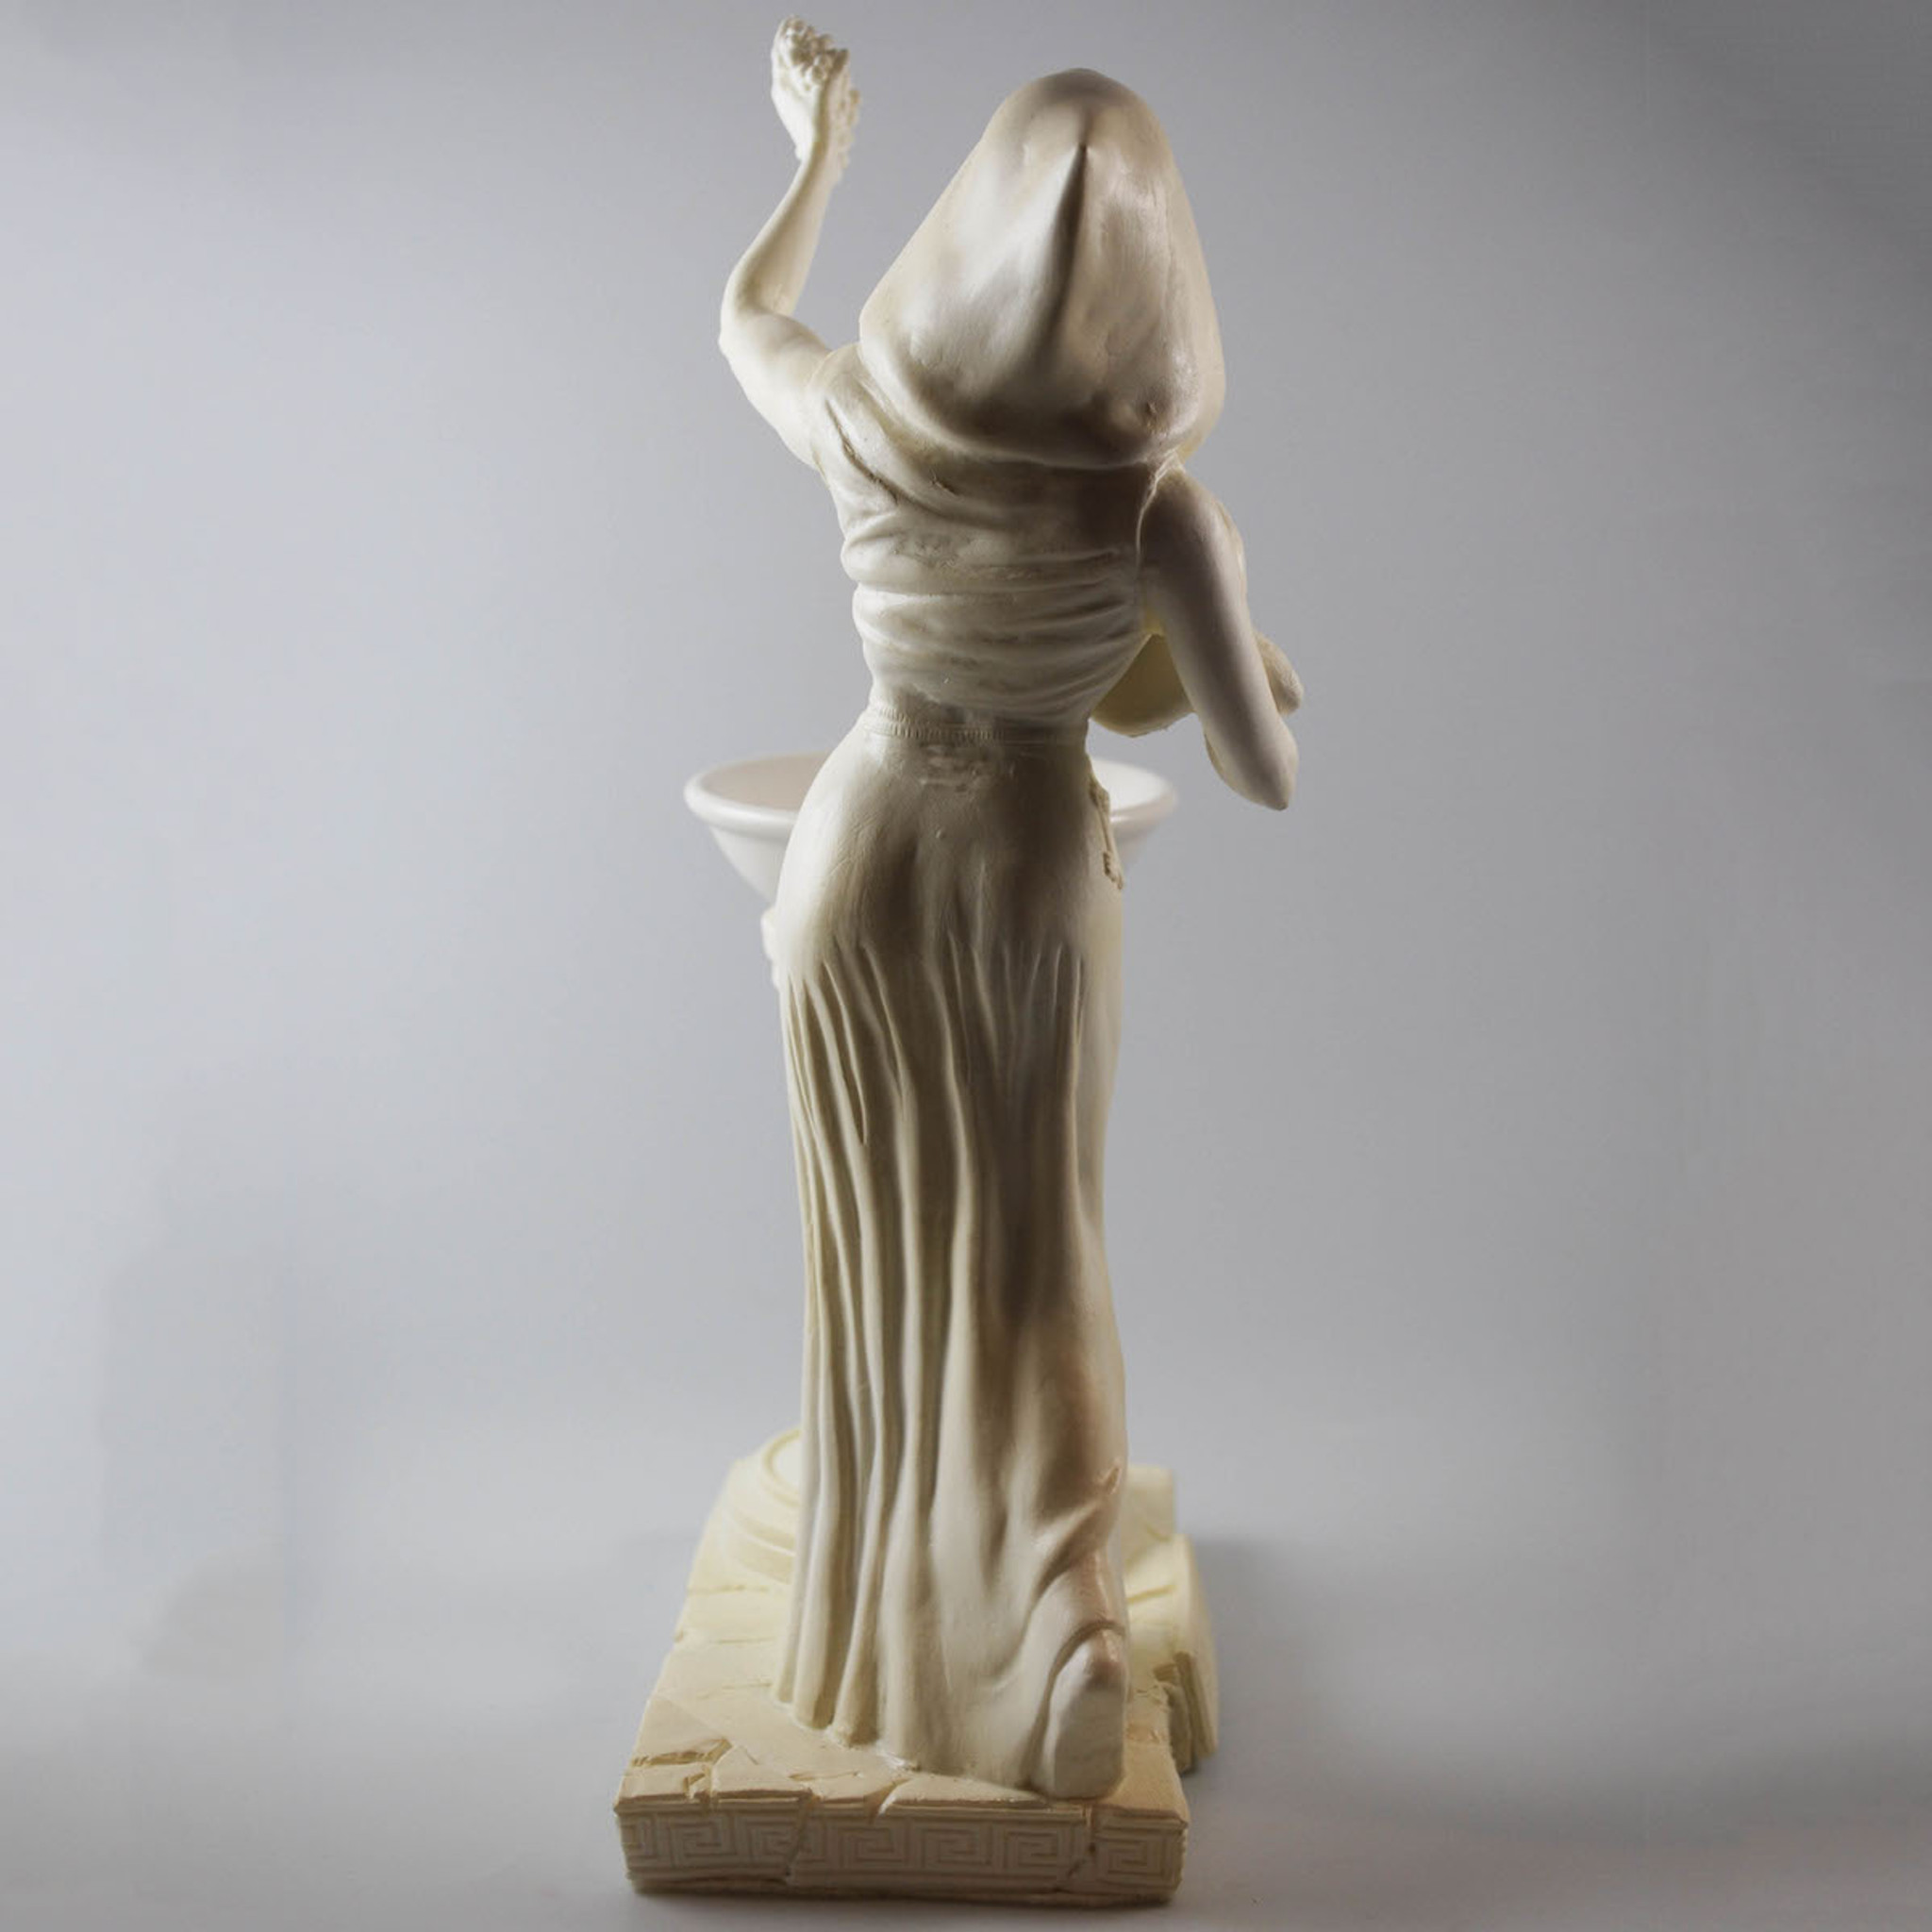 Hestia Statue - Handcrafted by the Artist